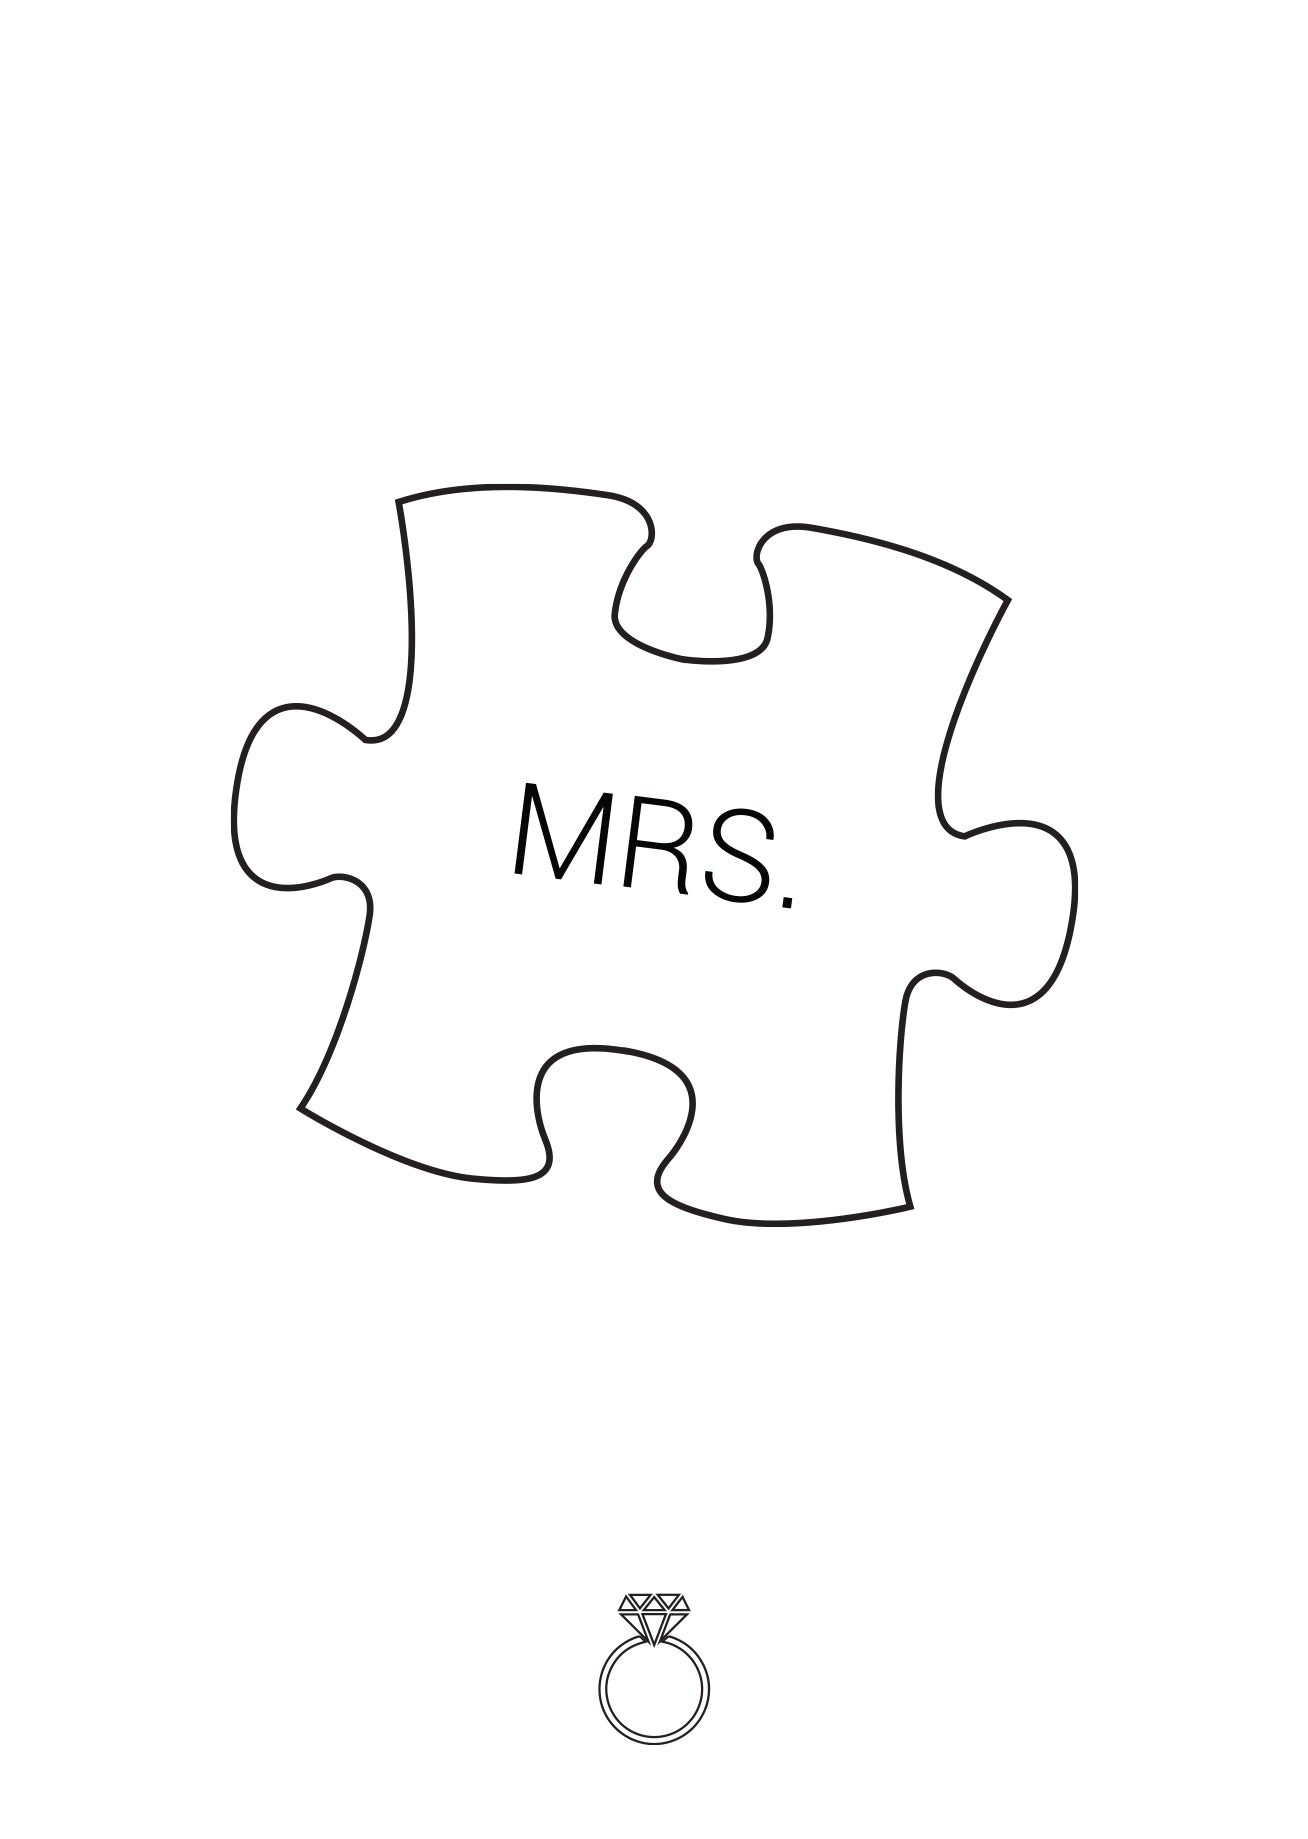 White puzzle piece with 'Mrs.' written on it